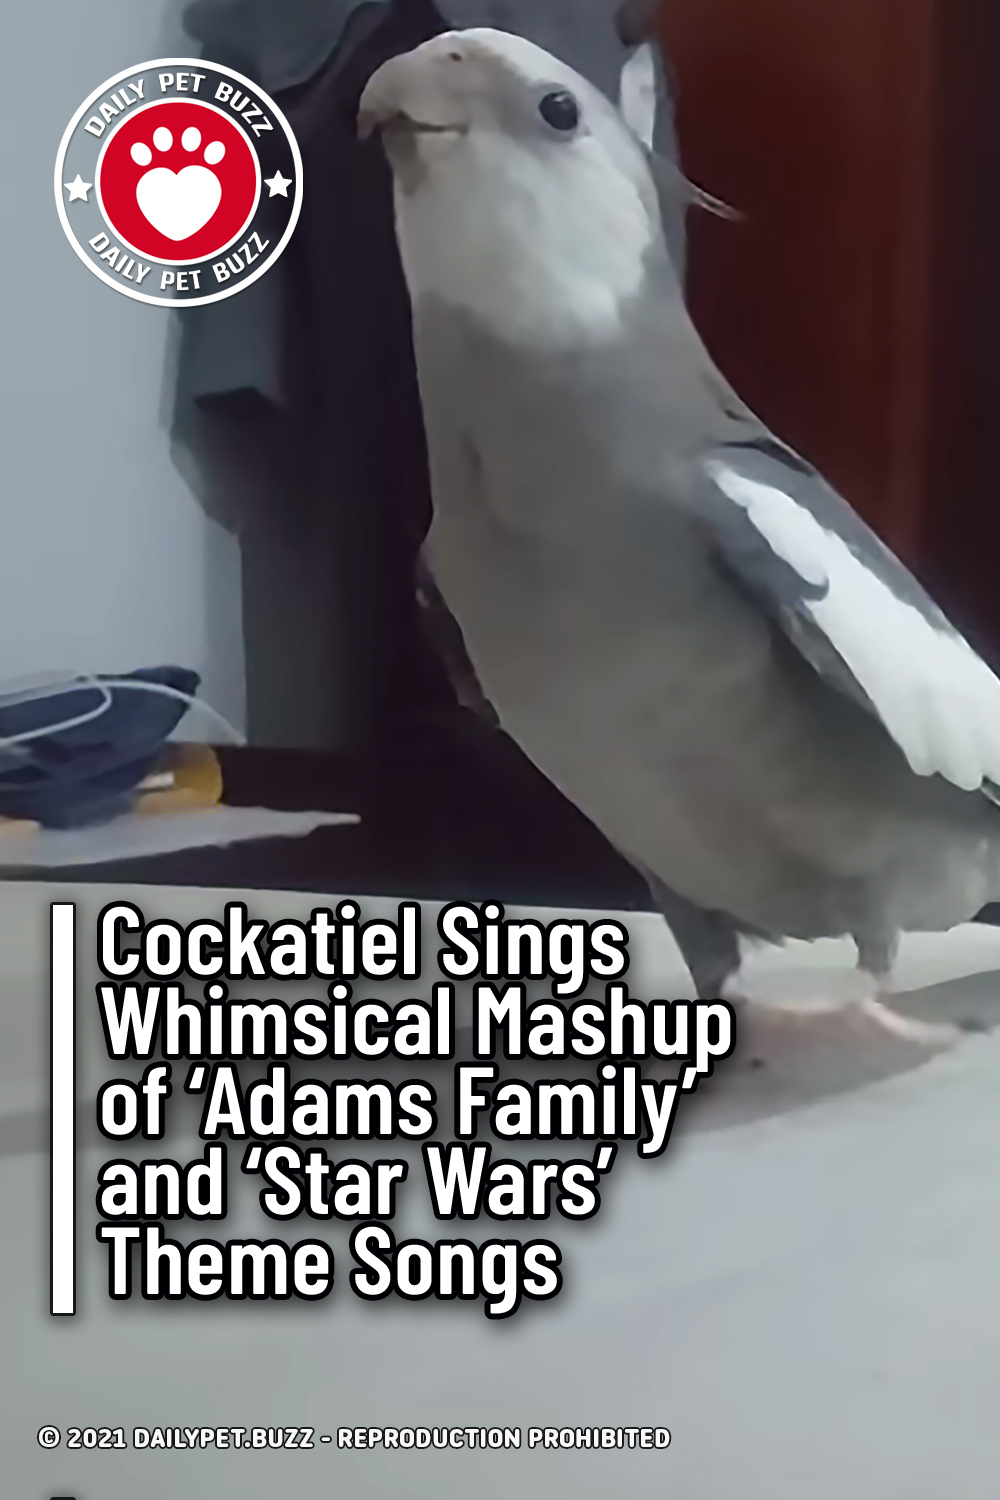 Cockatiel Sings Whimsical Mashup of \'Adams Family\' and \'Star Wars\' Theme Songs